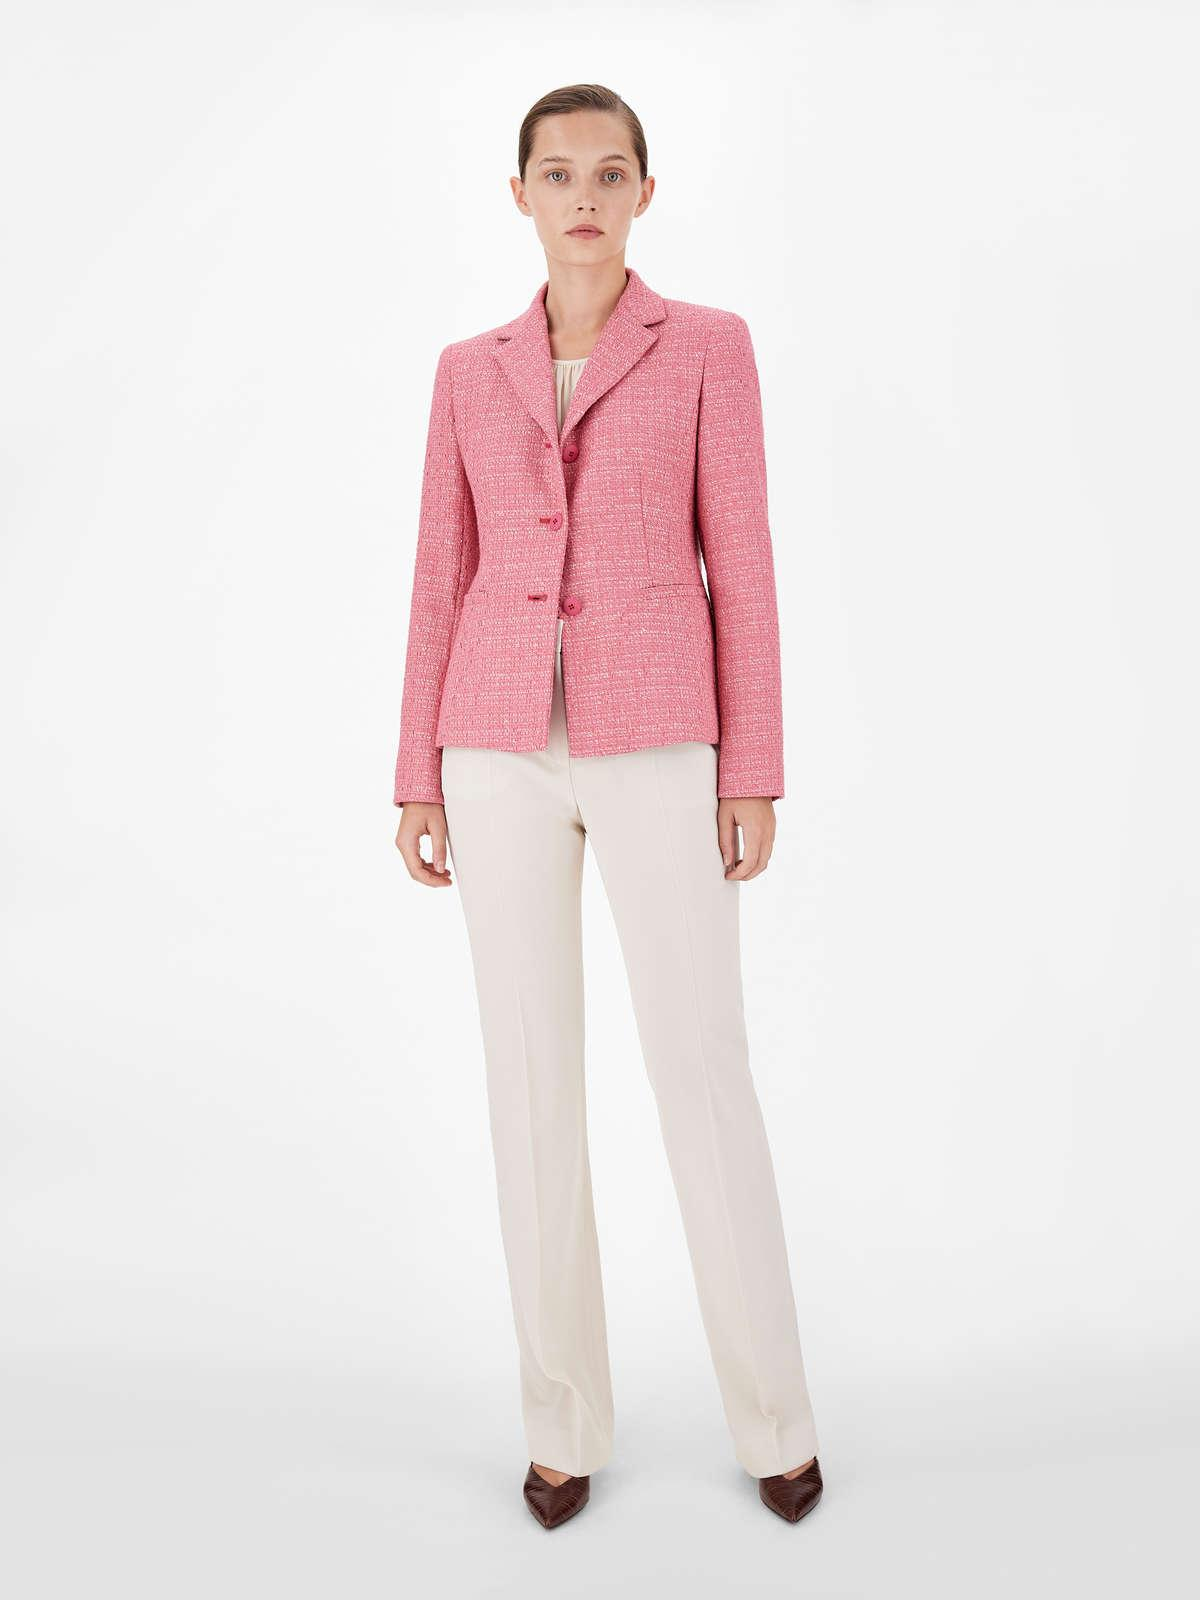 Womens Max Mara Jackets And Blazers | Stretch Viscose And Cotton Jacket Antique Rose